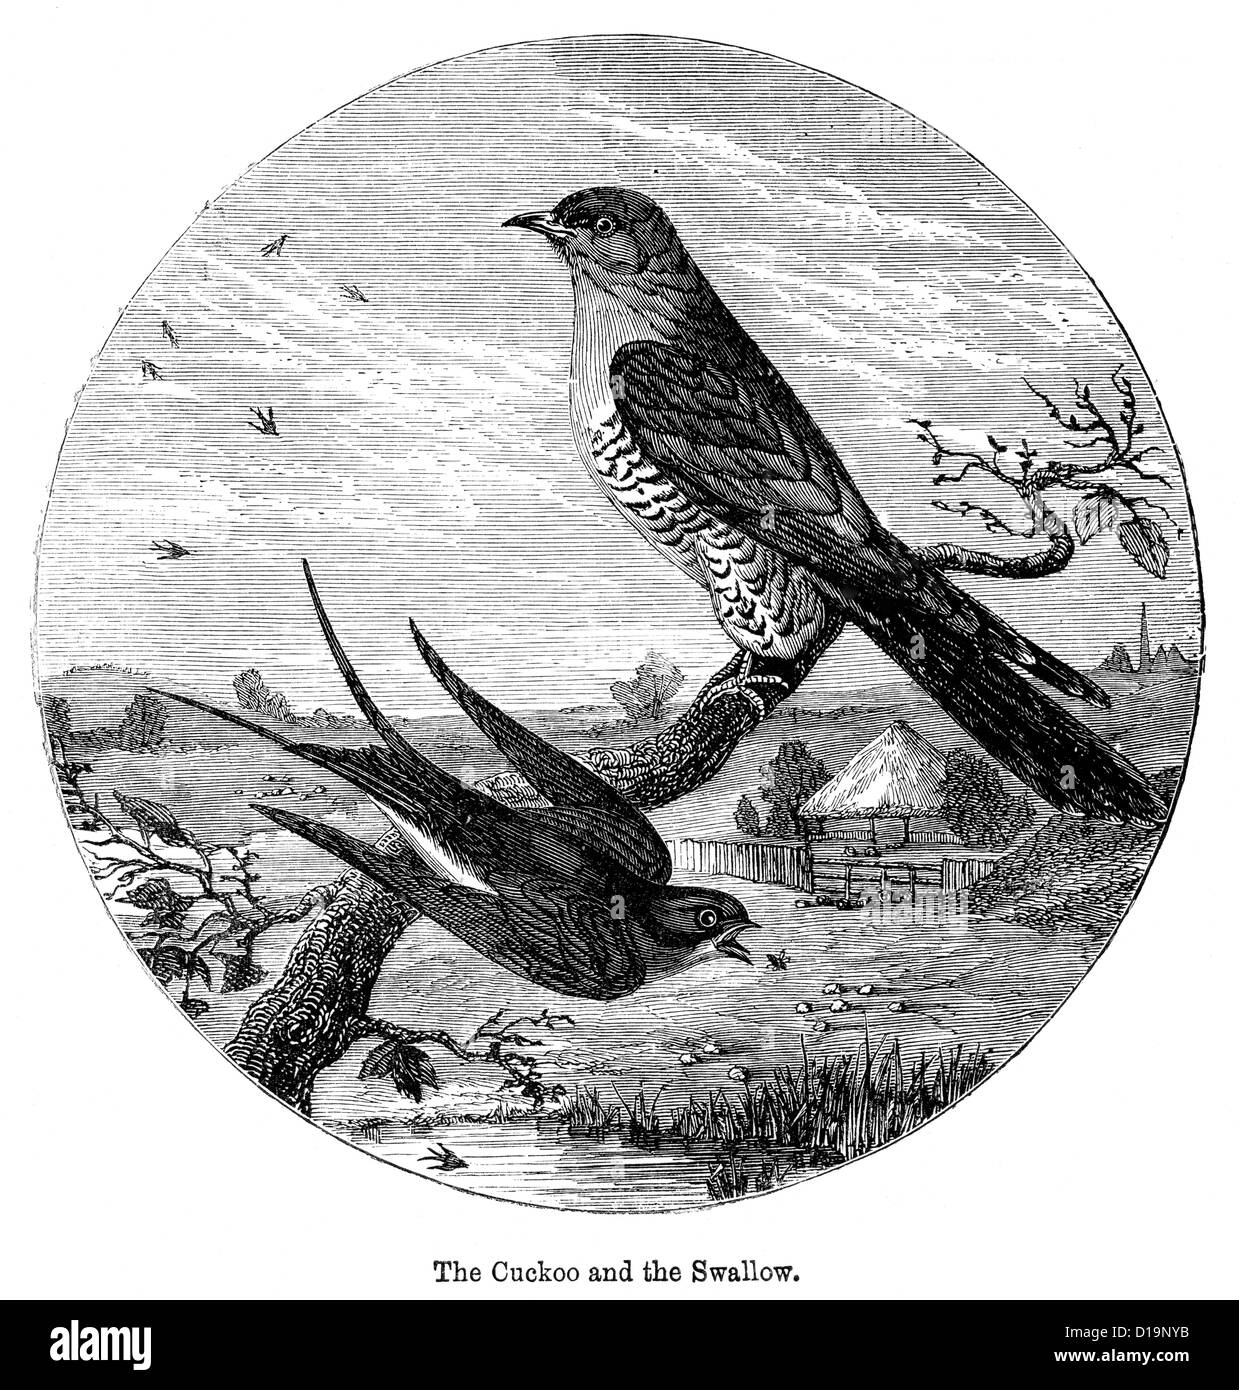 Victorian engraving of a Cuckoo and Swallow, 1897 - Stock Image